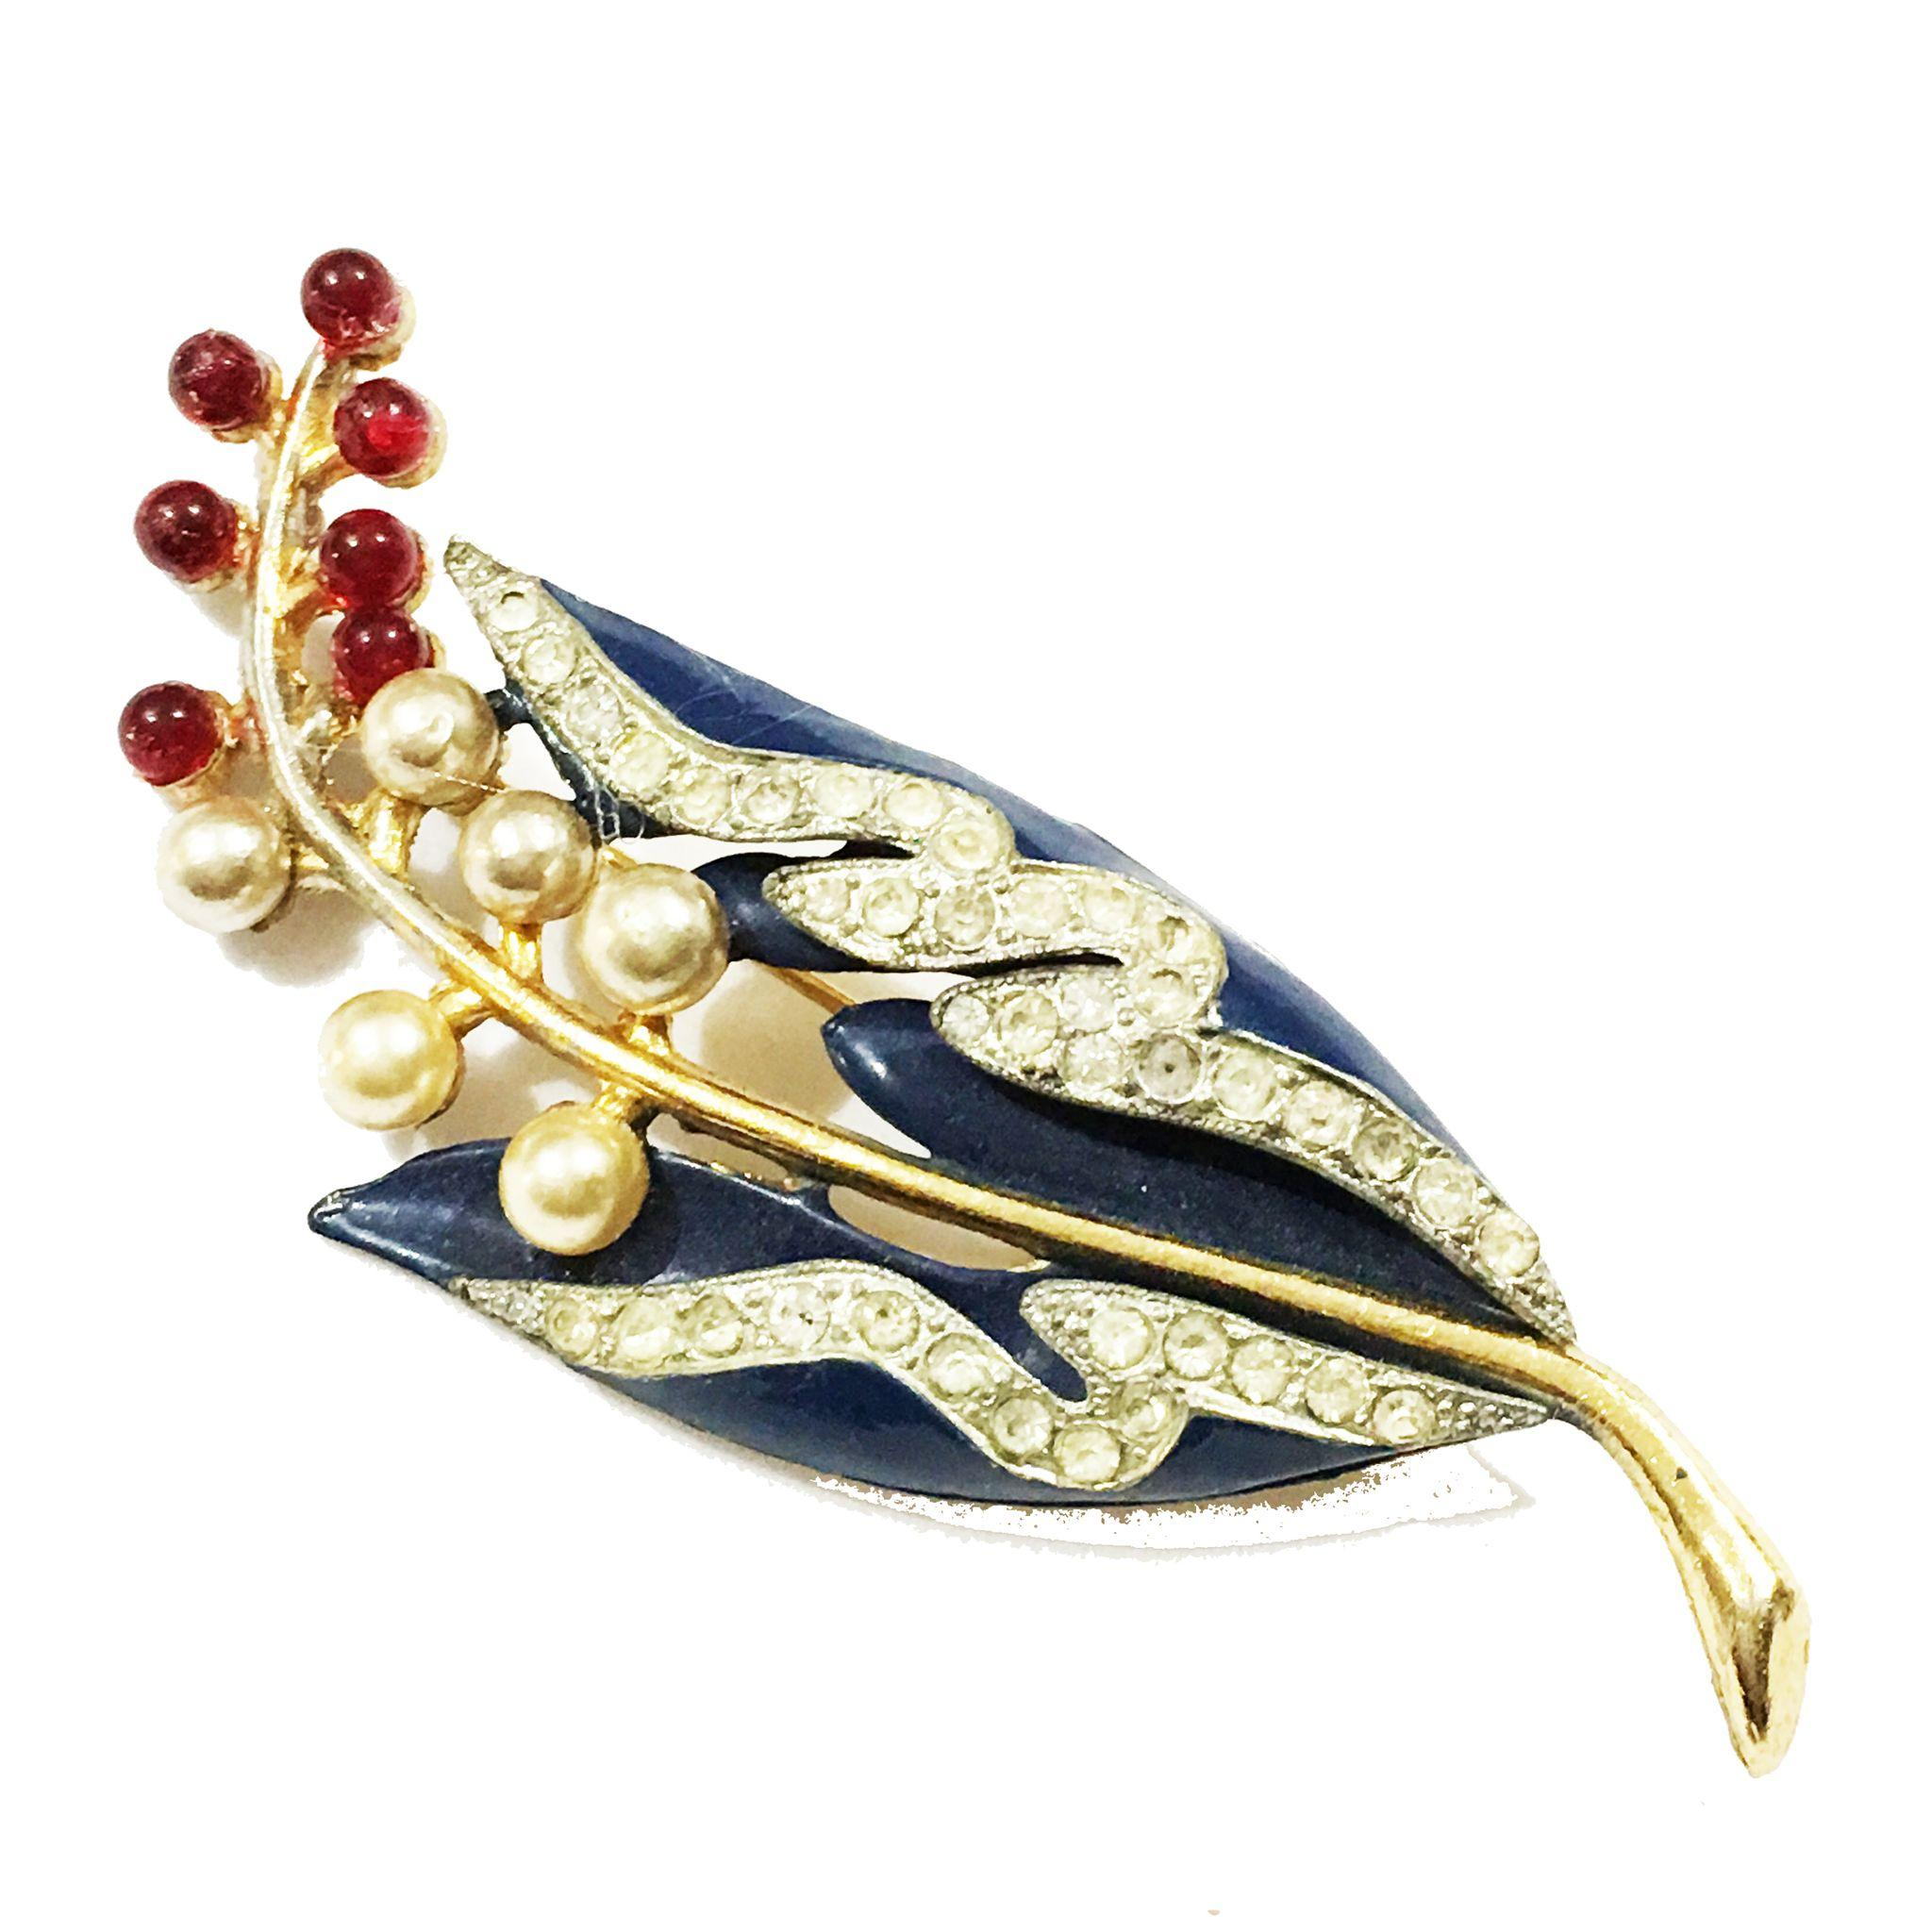 1940s Dark Navy Enameled Floral Brooch with Imitation Pearl and Ruby Glass Cabochons